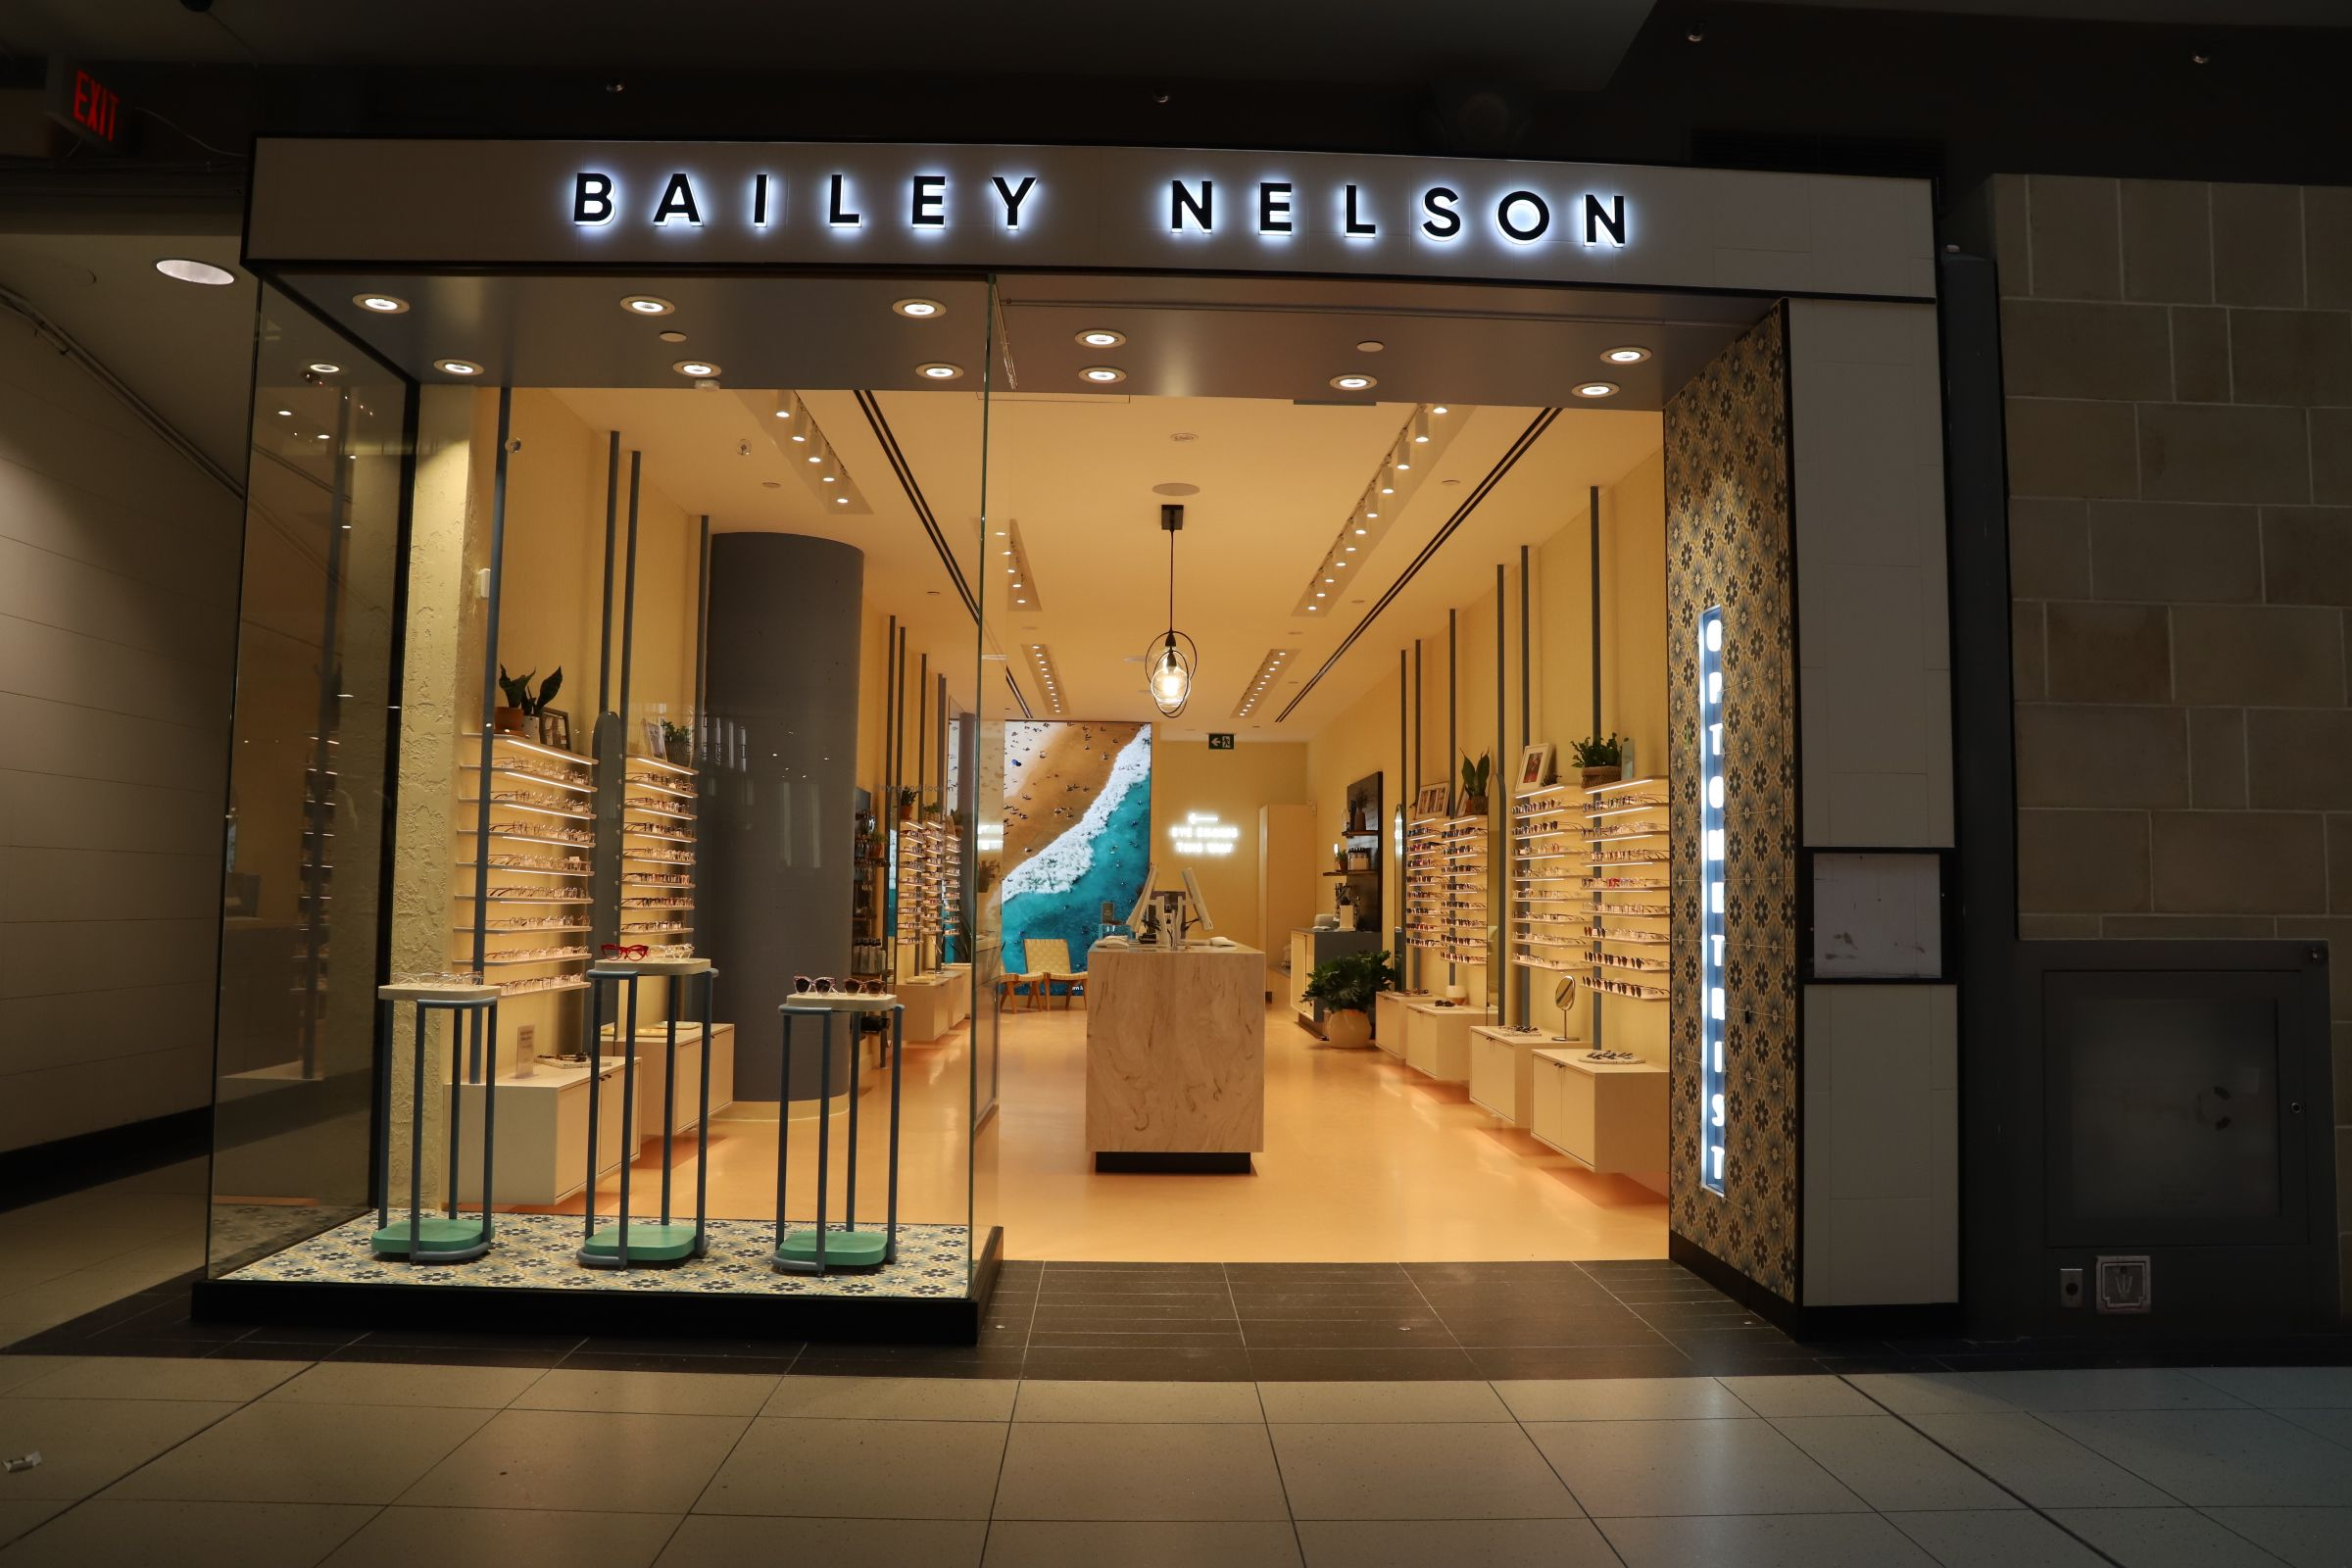 Pin By May Elbahy On Eyewear In 2020 With Images Eaton Centre Eyewear Brand Bailey